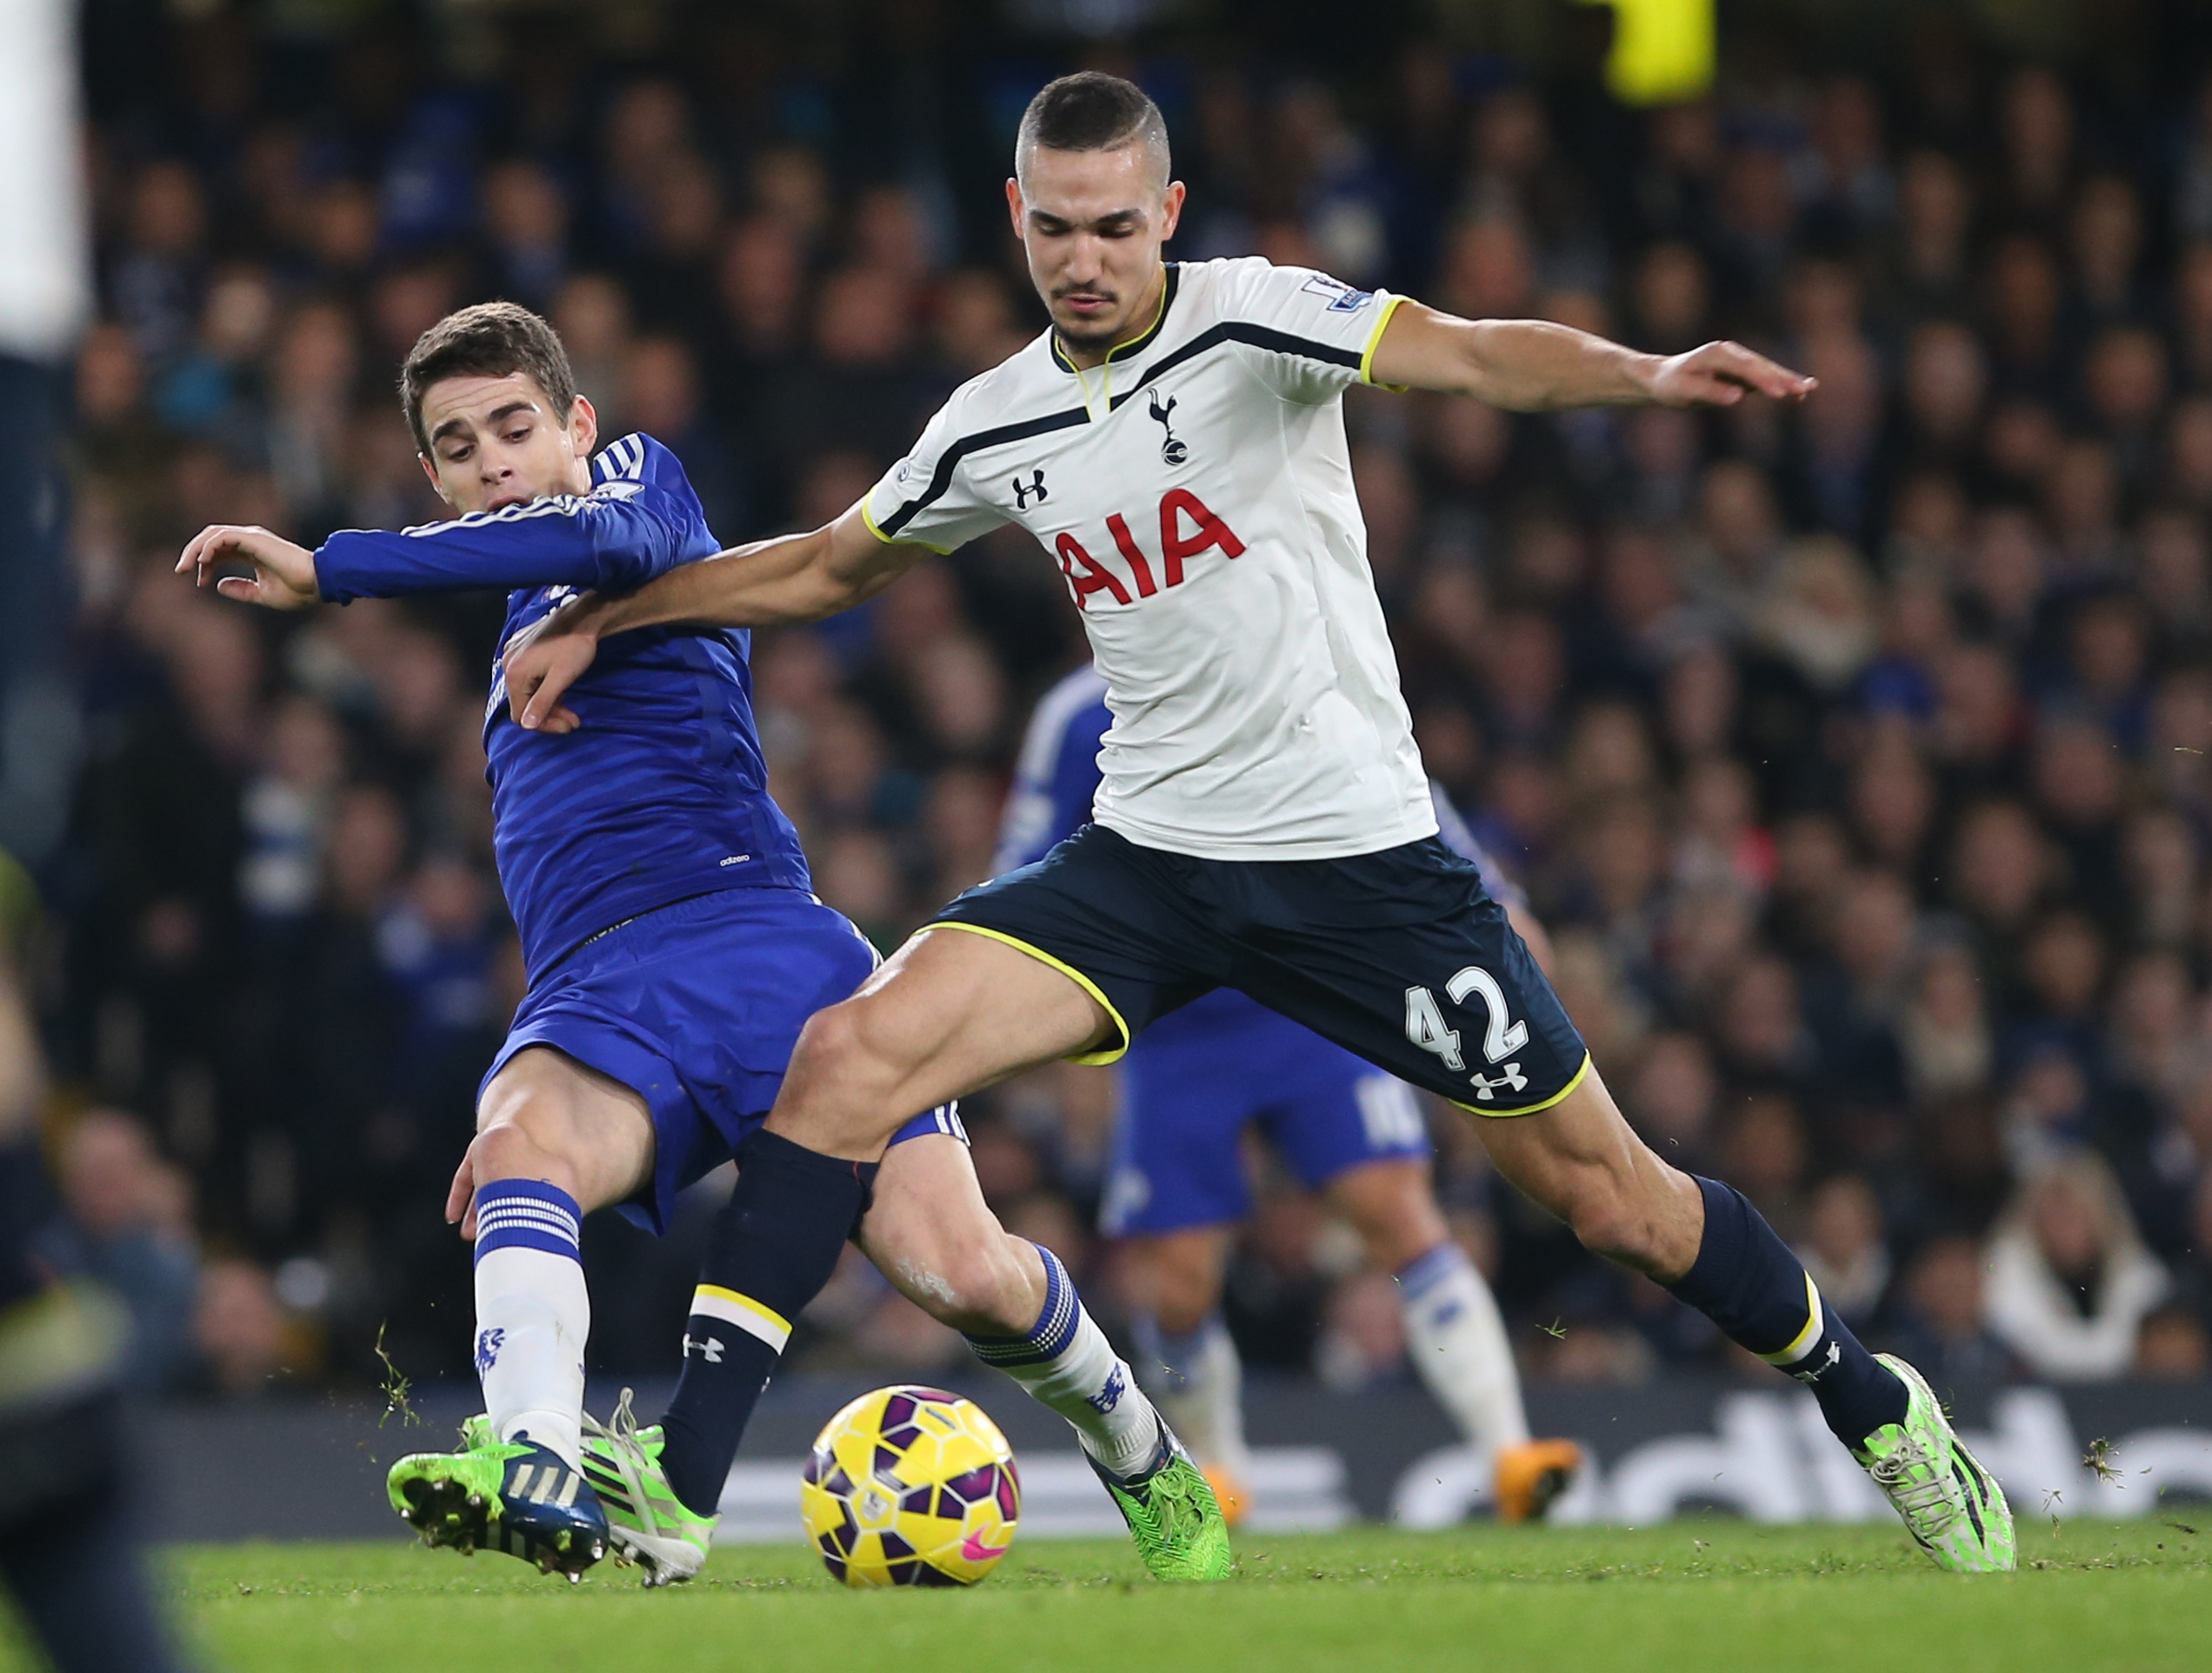 03 December 2014 Premier League Football - Chelsea FC v Tottenham Hotspur; Nabil Bentaleb of Tottenham shields the ball from Oscar. Photo: Mark Leech